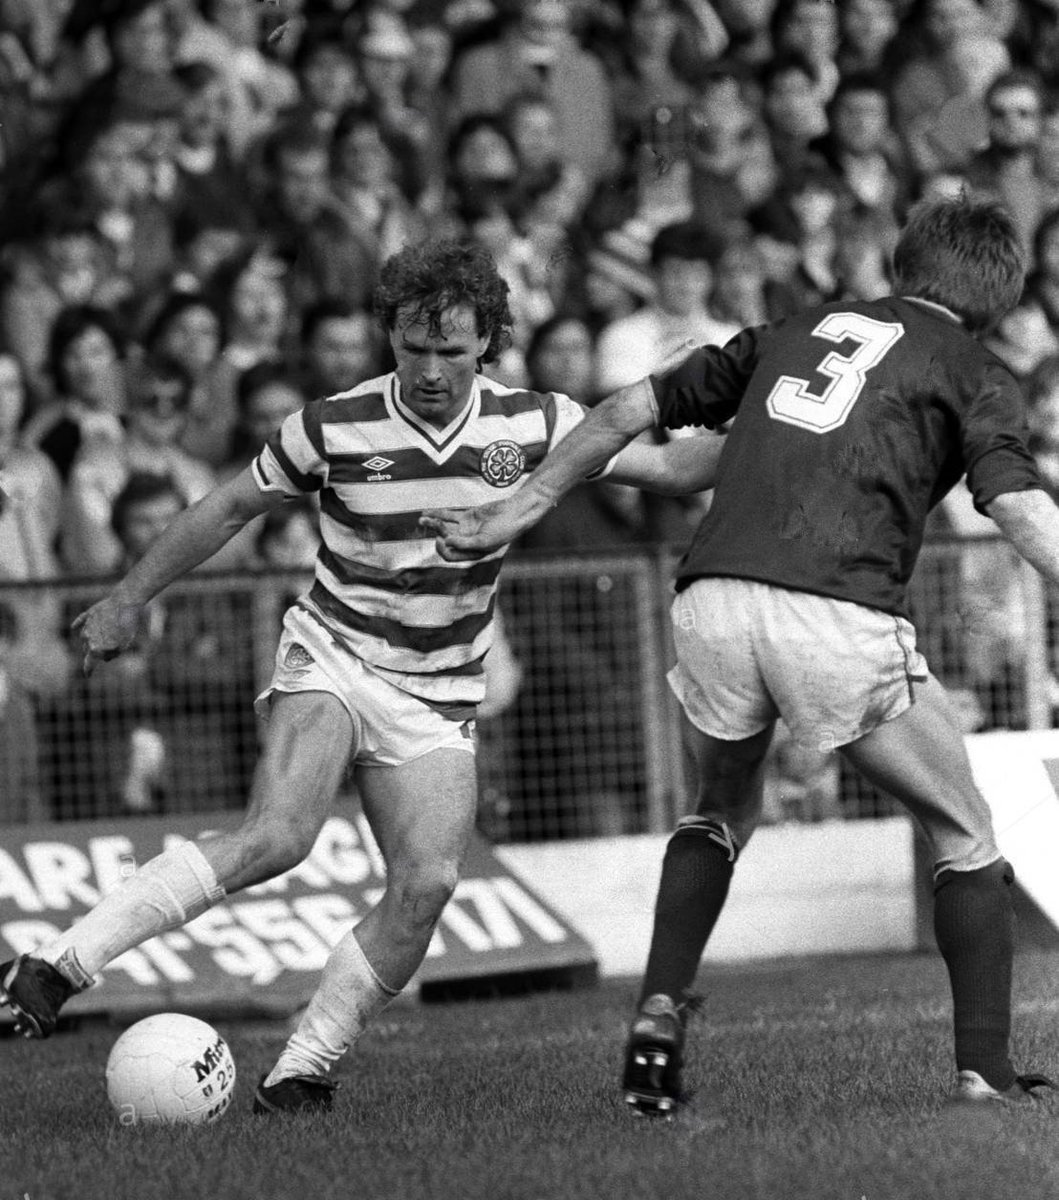 Davie Provan on the wing. the Hearts defender looks like a guy called George Cowie.